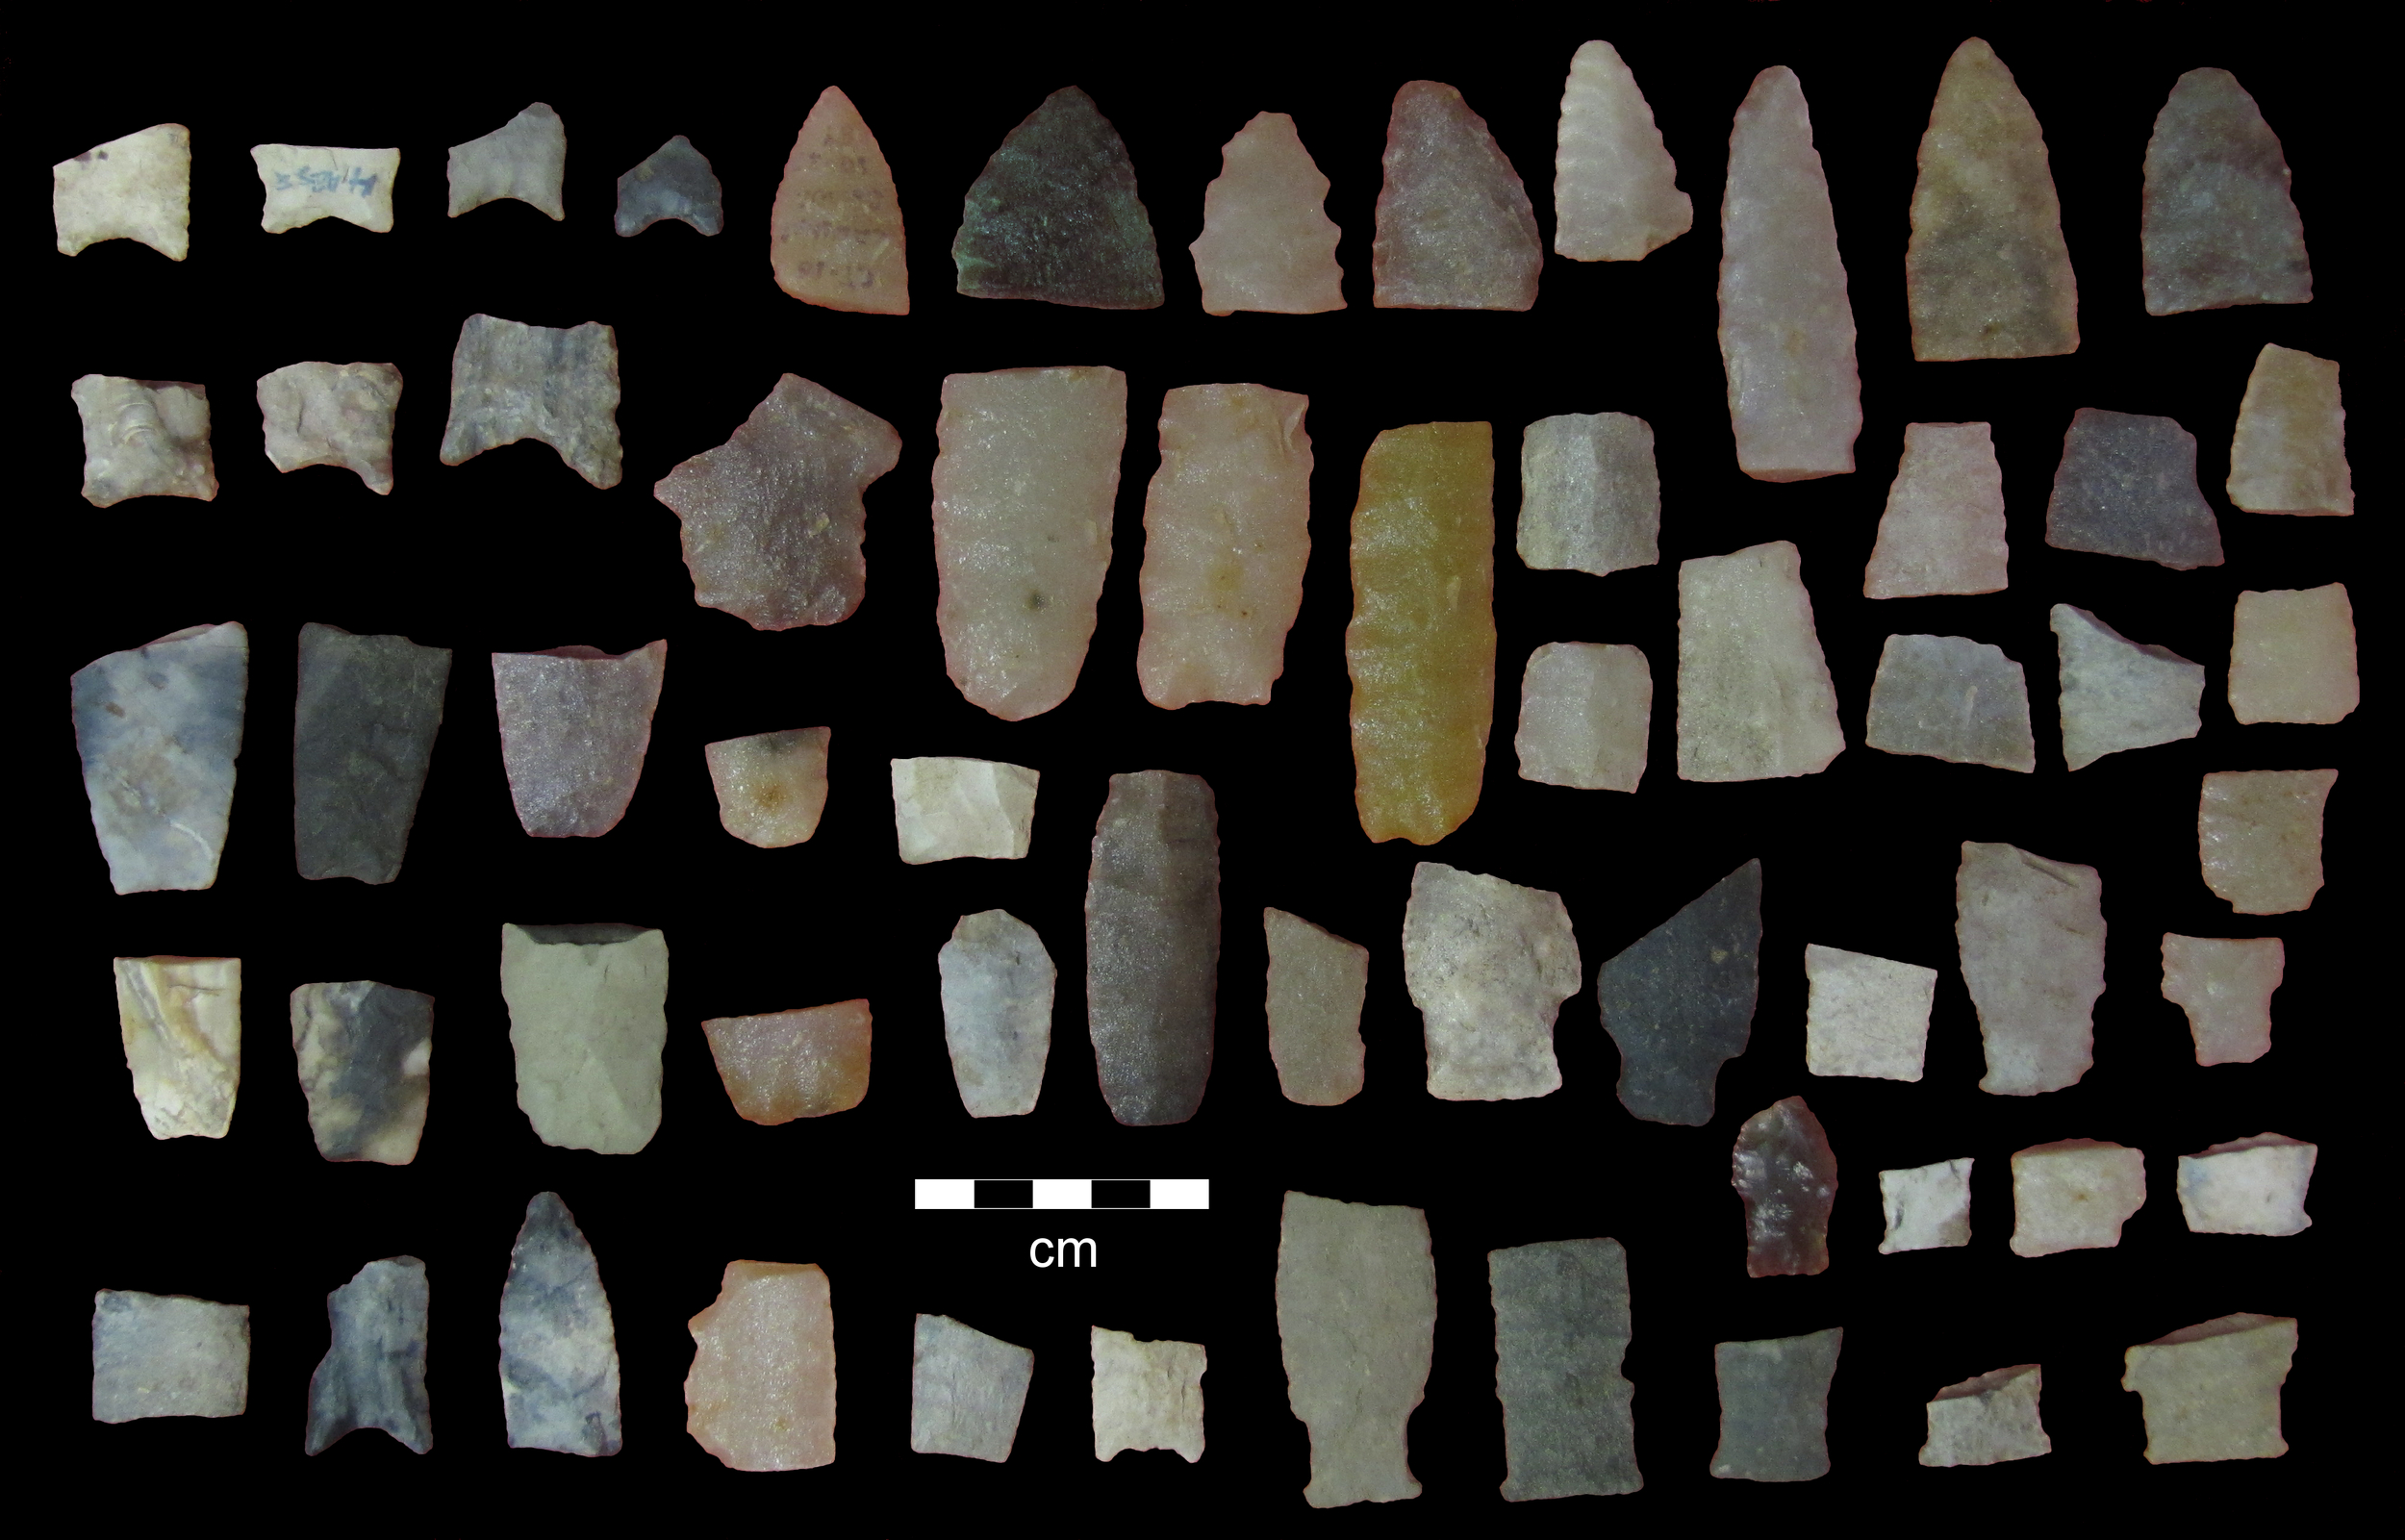 Top: Bead analyzed using Laser Ablation - ICP-MS (Inductively-Coupled Plasma - Mass Spectrometry).  Courtesy Heather Walder.   Bottom: Paleoindian projectile points and preforms in the Babler collection from the Forks View site (47-CT-100).  Courtesy John Lambert.